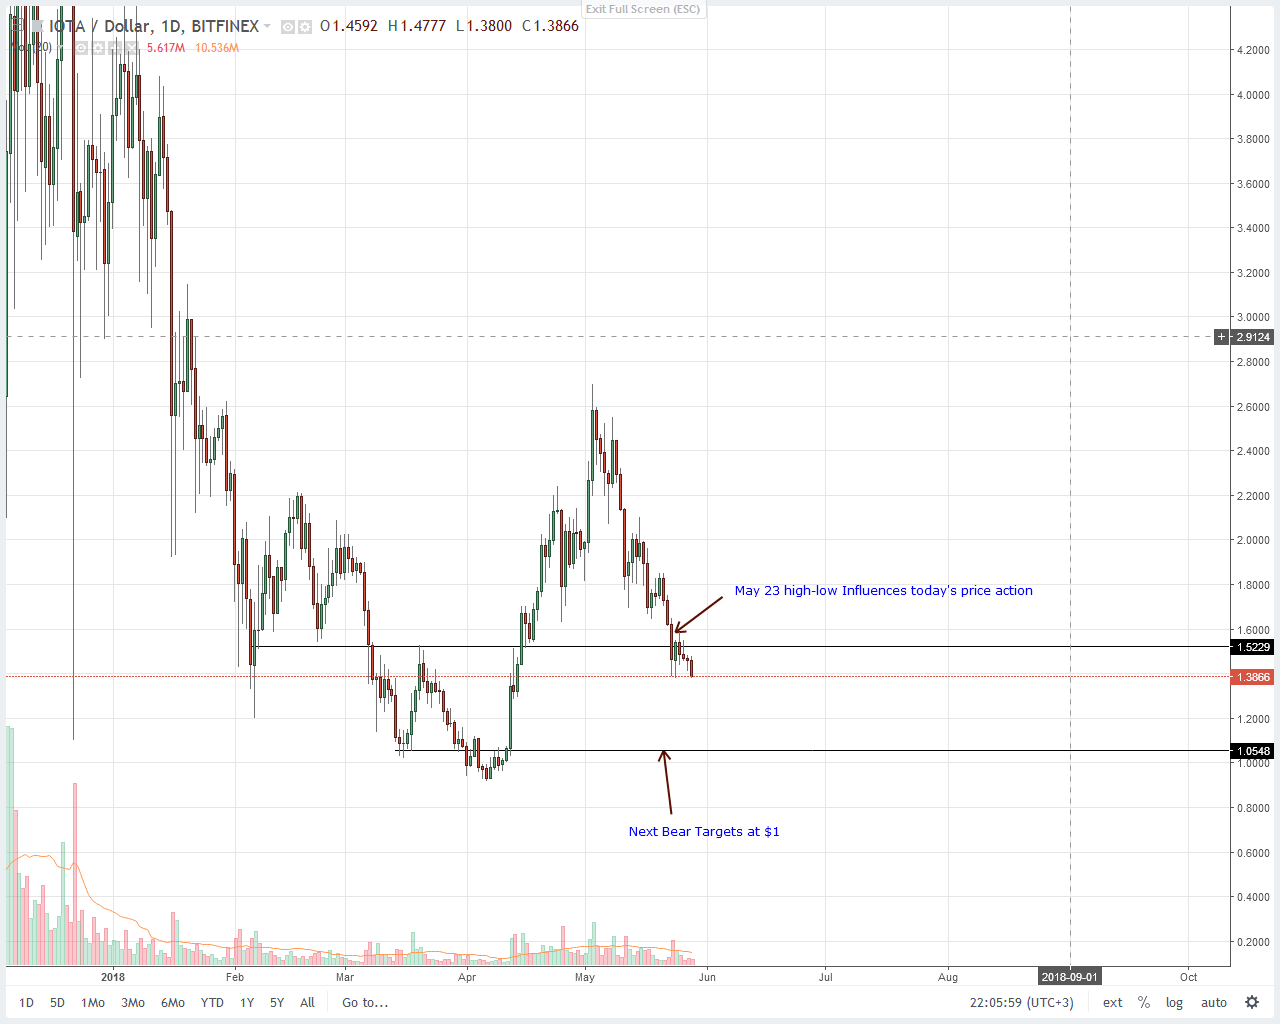 IOTA (IOT) Technical Analysis